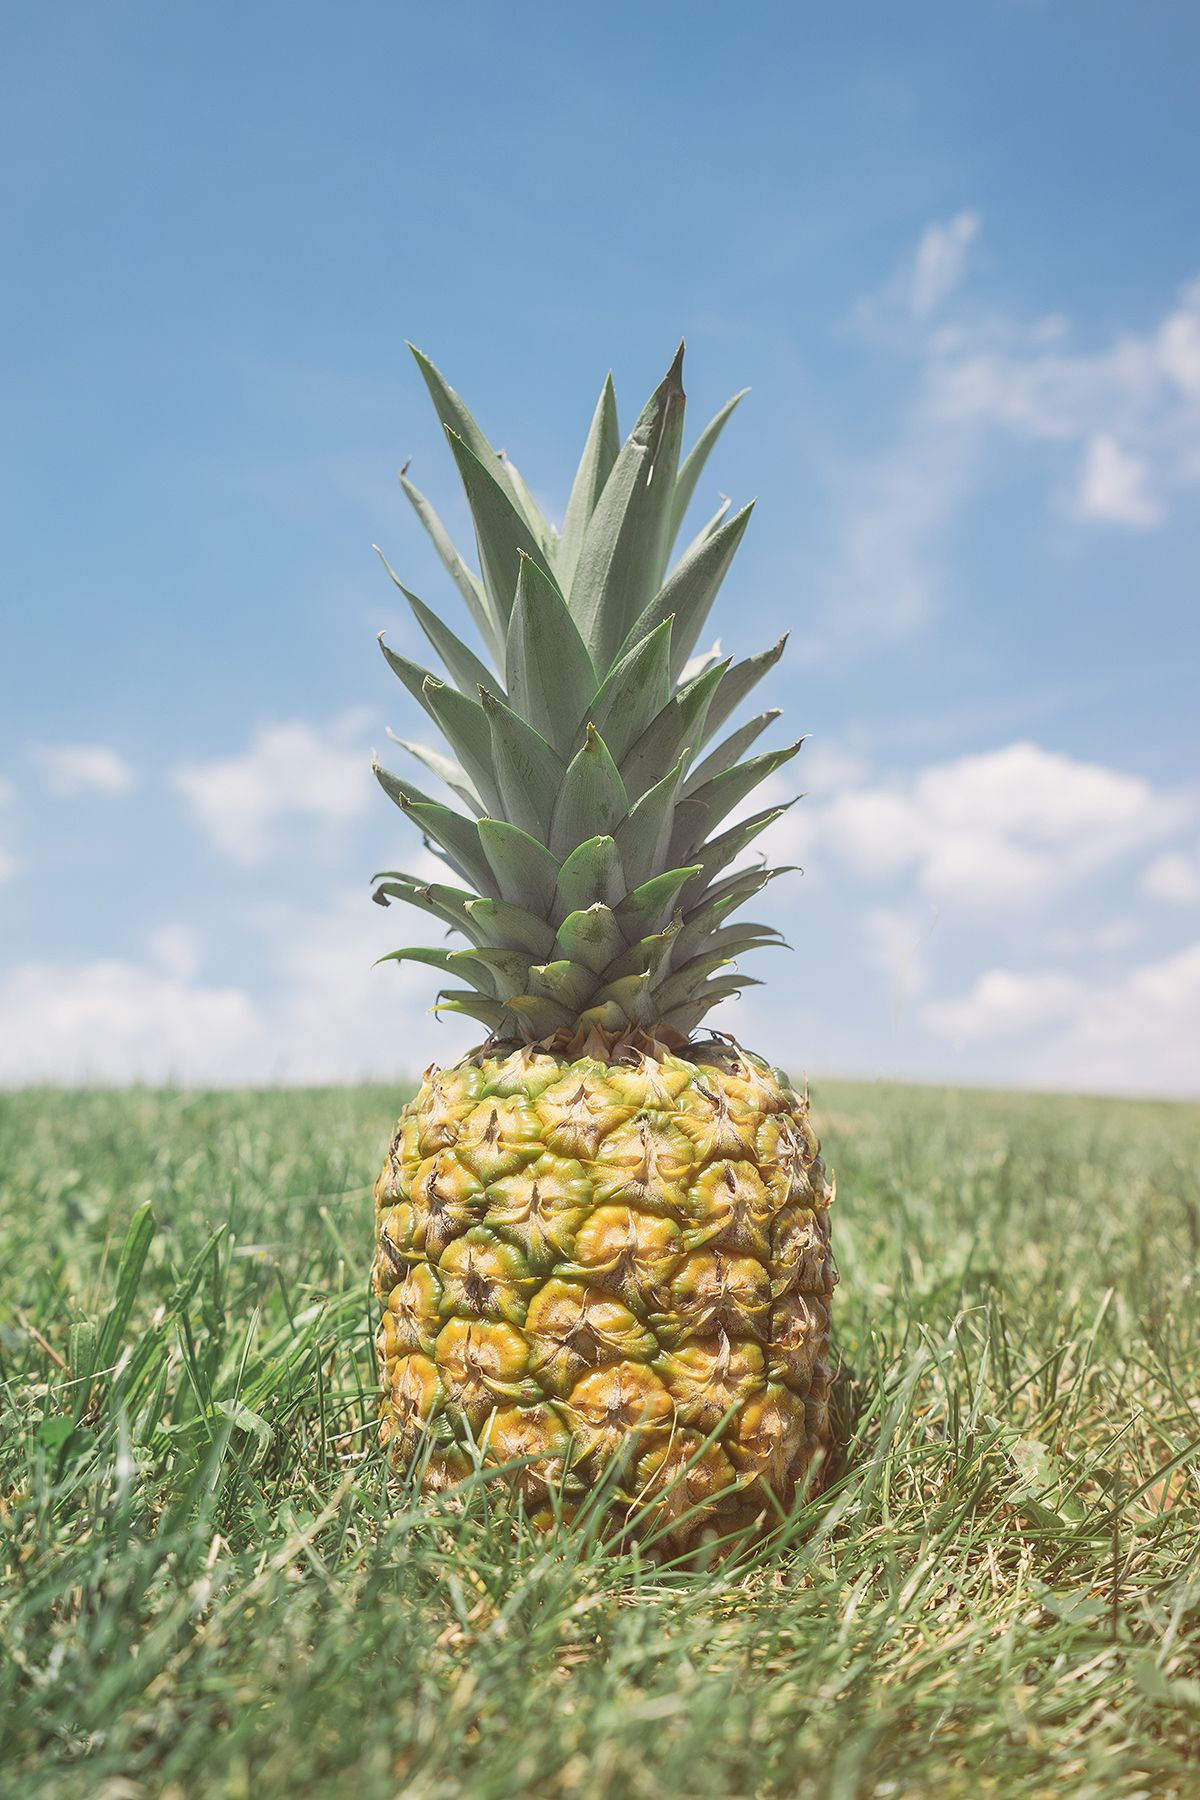 download Africa travel, Close up photography, Pineapple